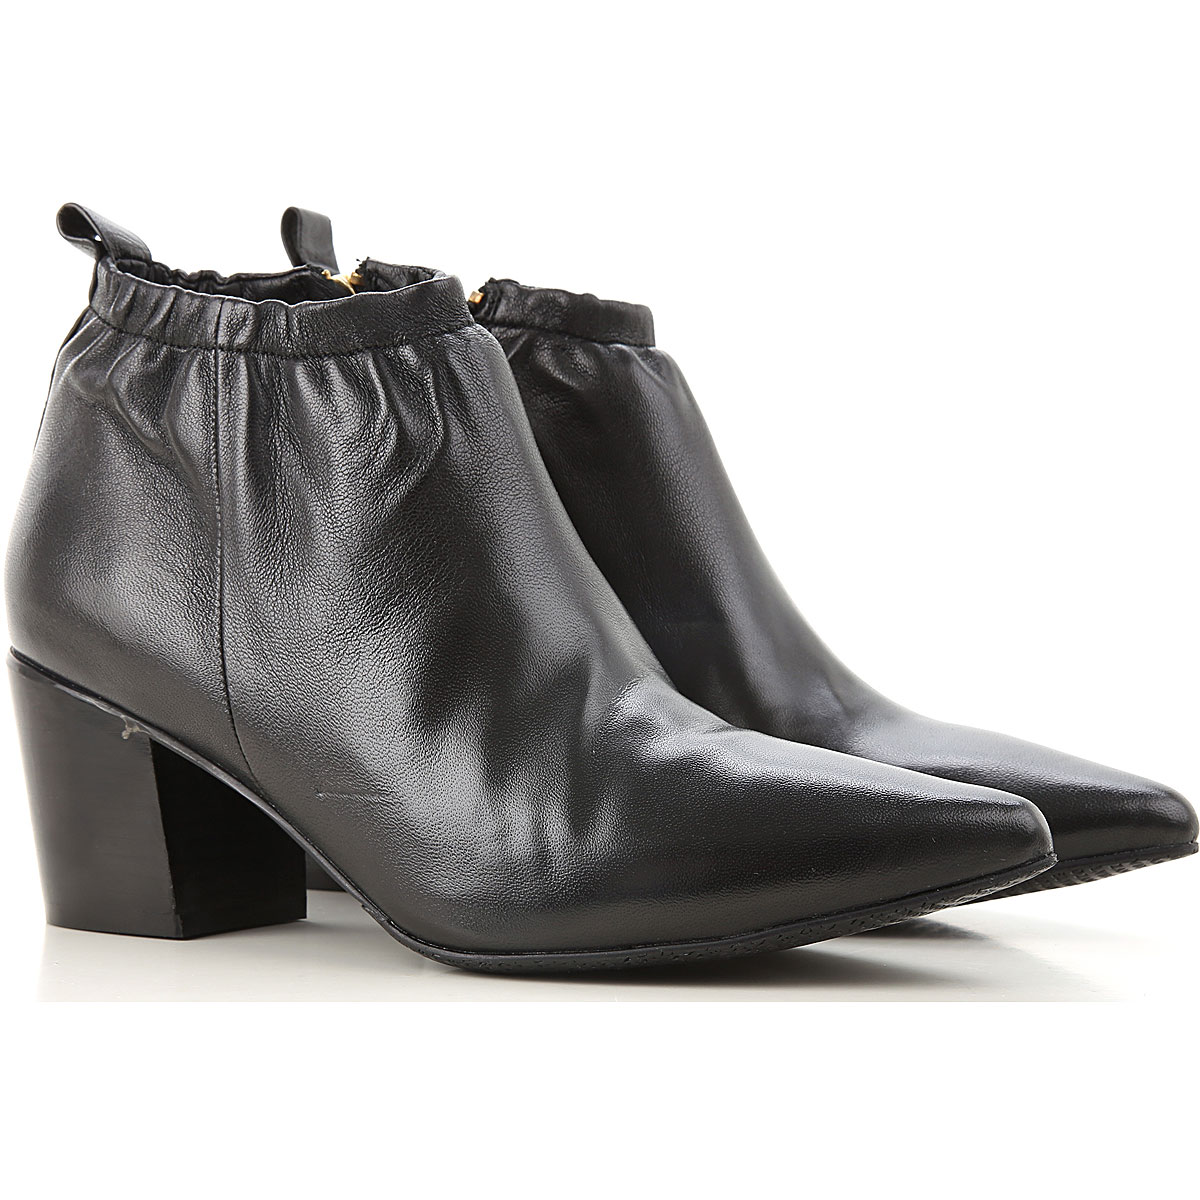 Elvio Zanon Boots for Women, Booties On Sale, Black, Leather, 2019, 10 11 6 9